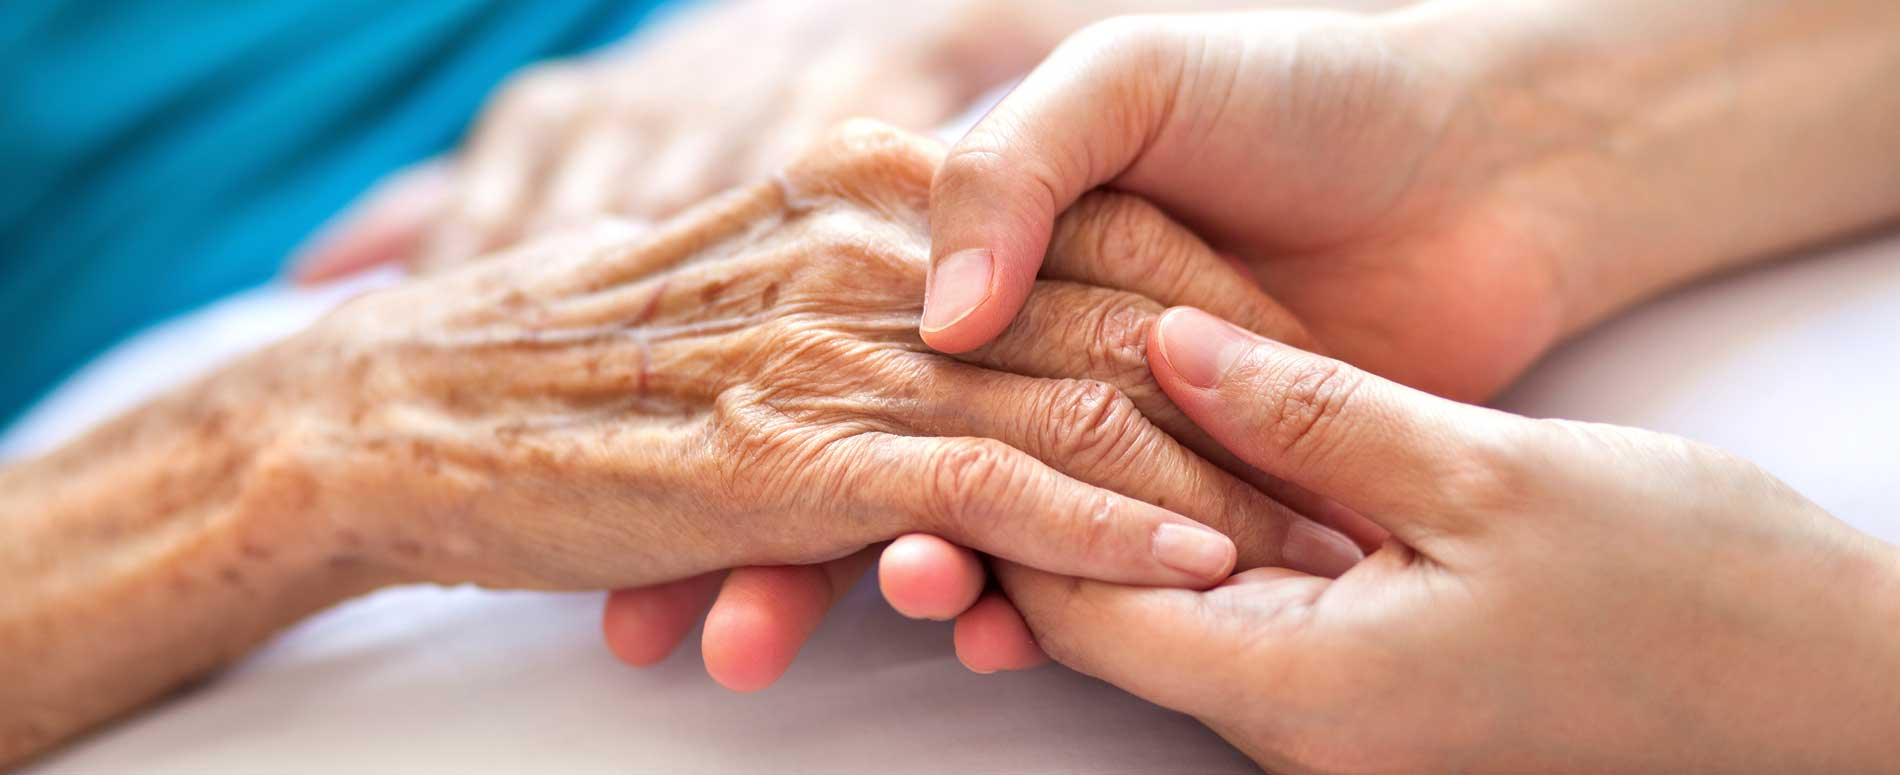 personal care at frederick living